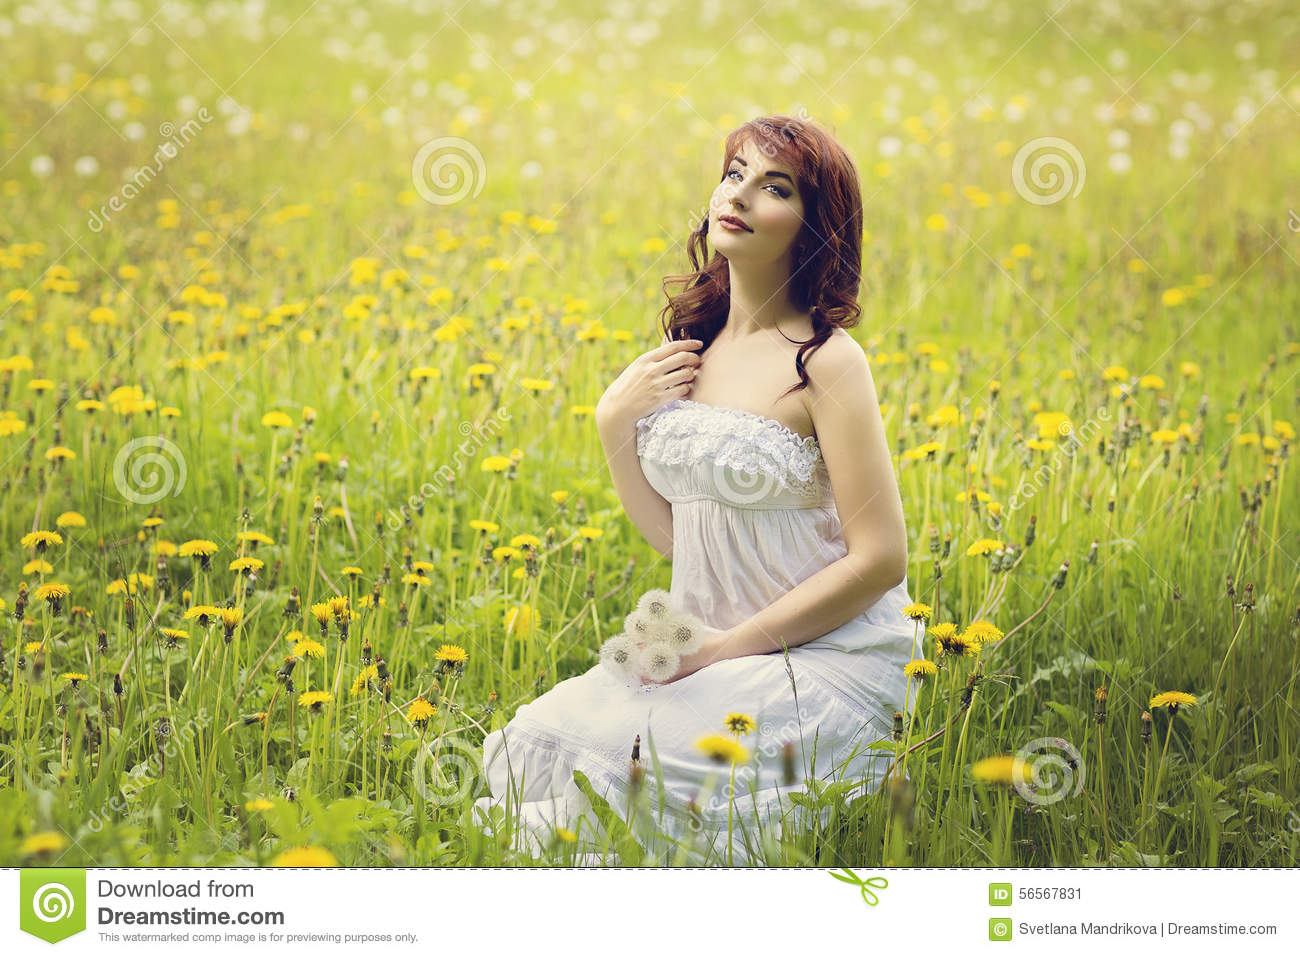 Beautiful Girl In Flower Field Stock Photo - Image: 56567831